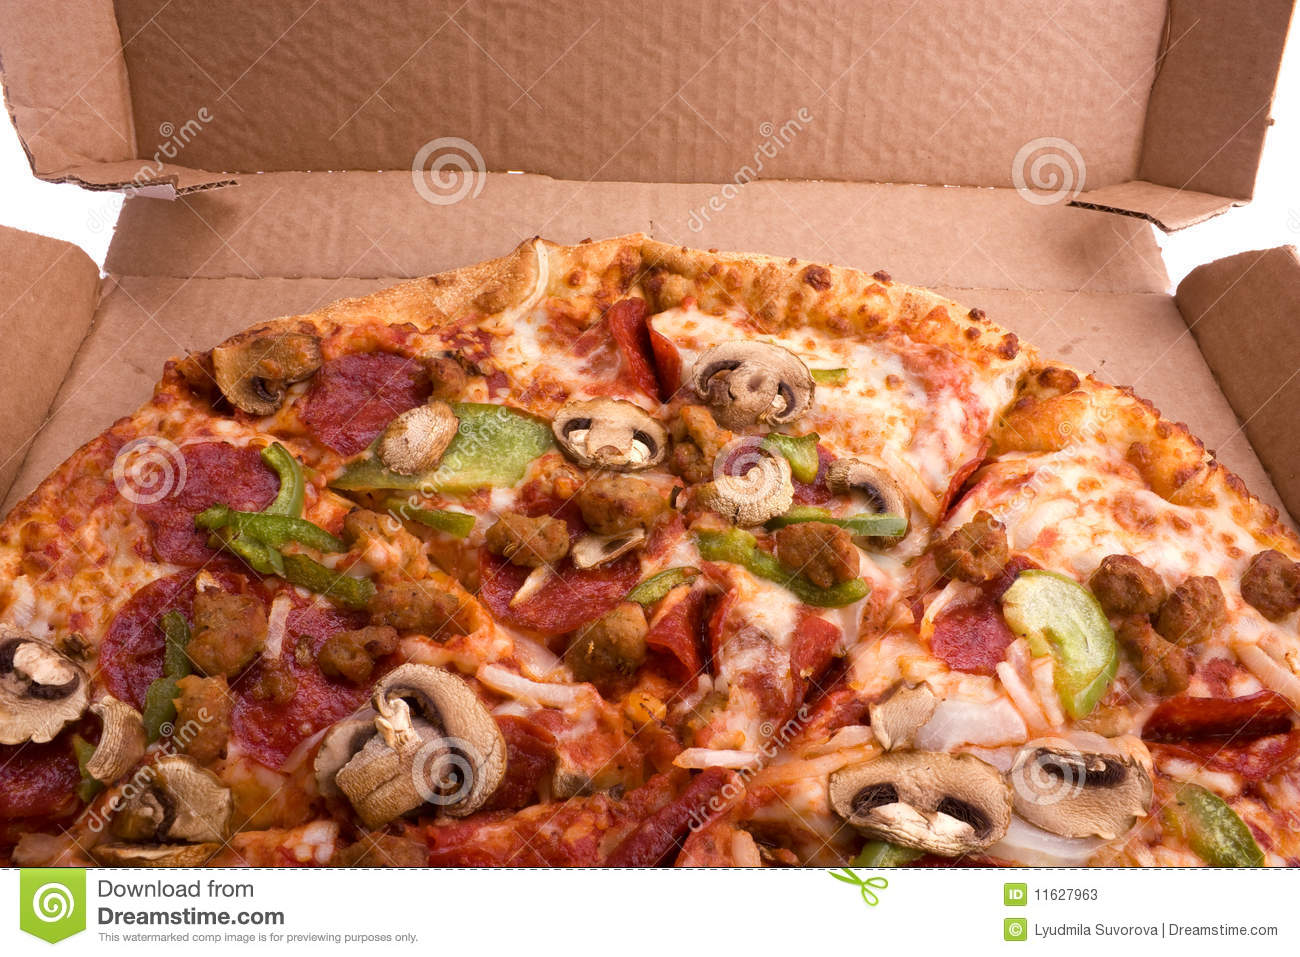 Pizza in a box stock photos image 11627963 for Jack in the box fish and chips